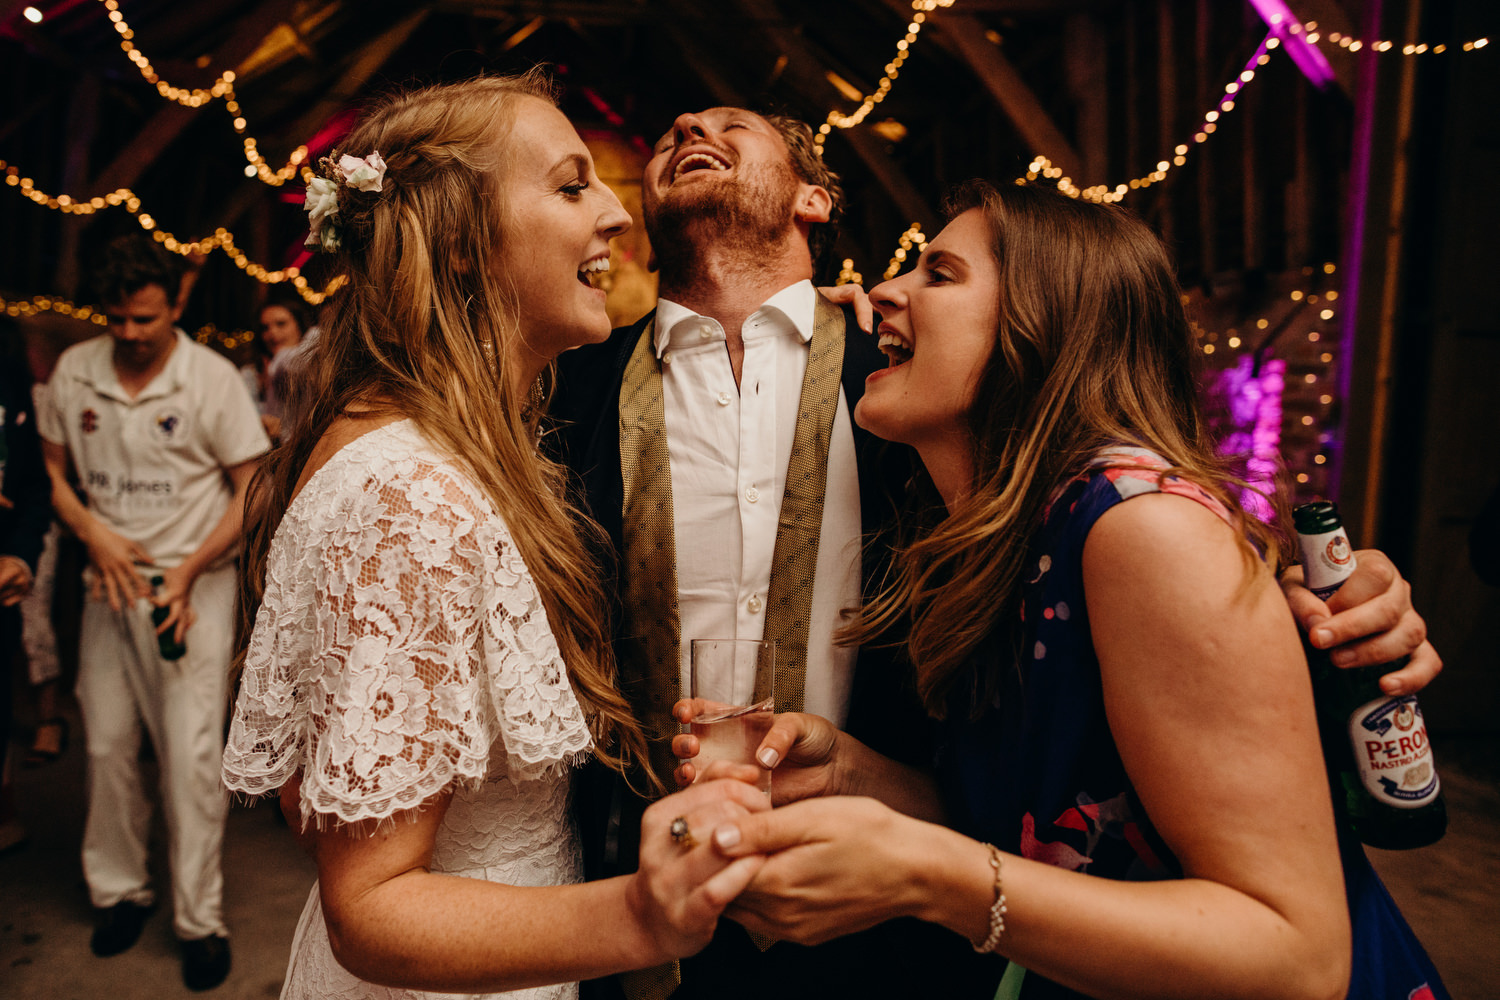 bride singing with guests